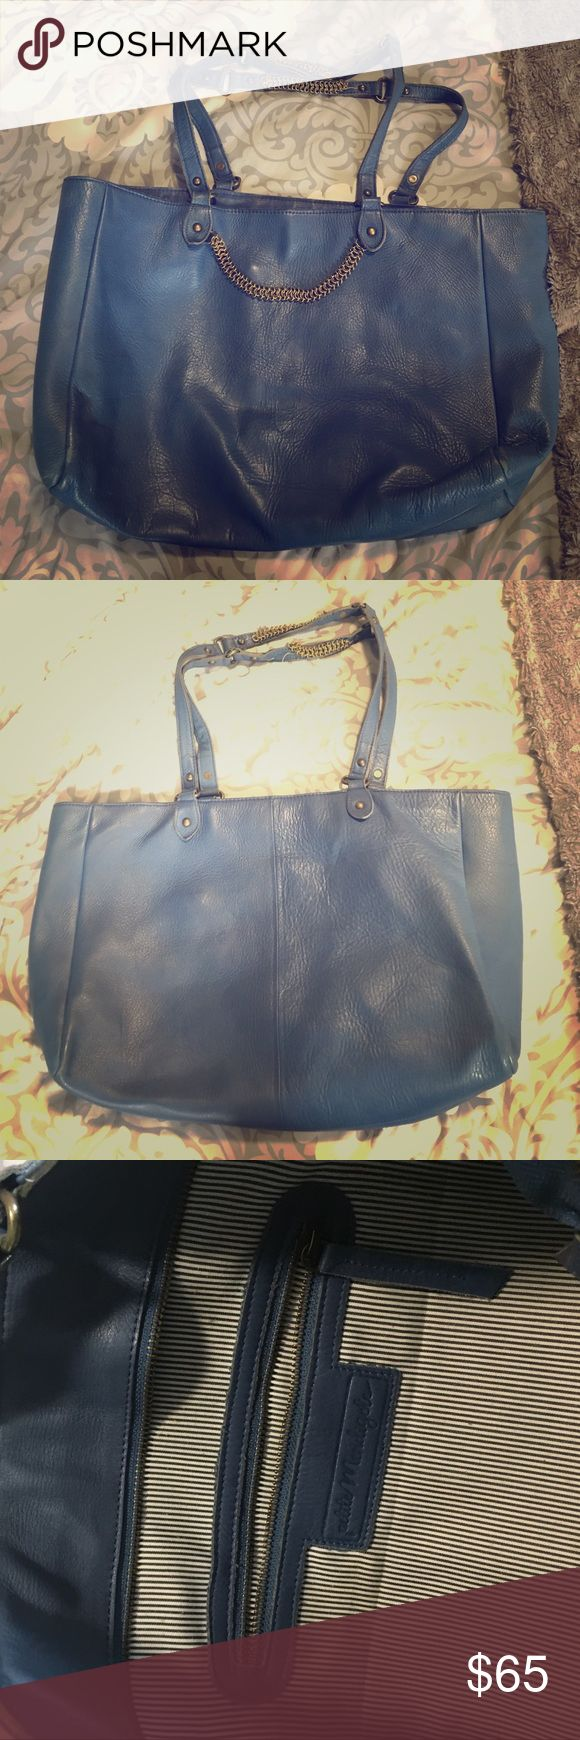 Light blue leather handbag Petite Mendigote Used leather light blue petite mendigote (famous French brand). The chain on the handles is loose but can easily be stitched back. Size is 15x11 appr. It can fit a laptop easily! petite mendigote Bags Shoulder Bags